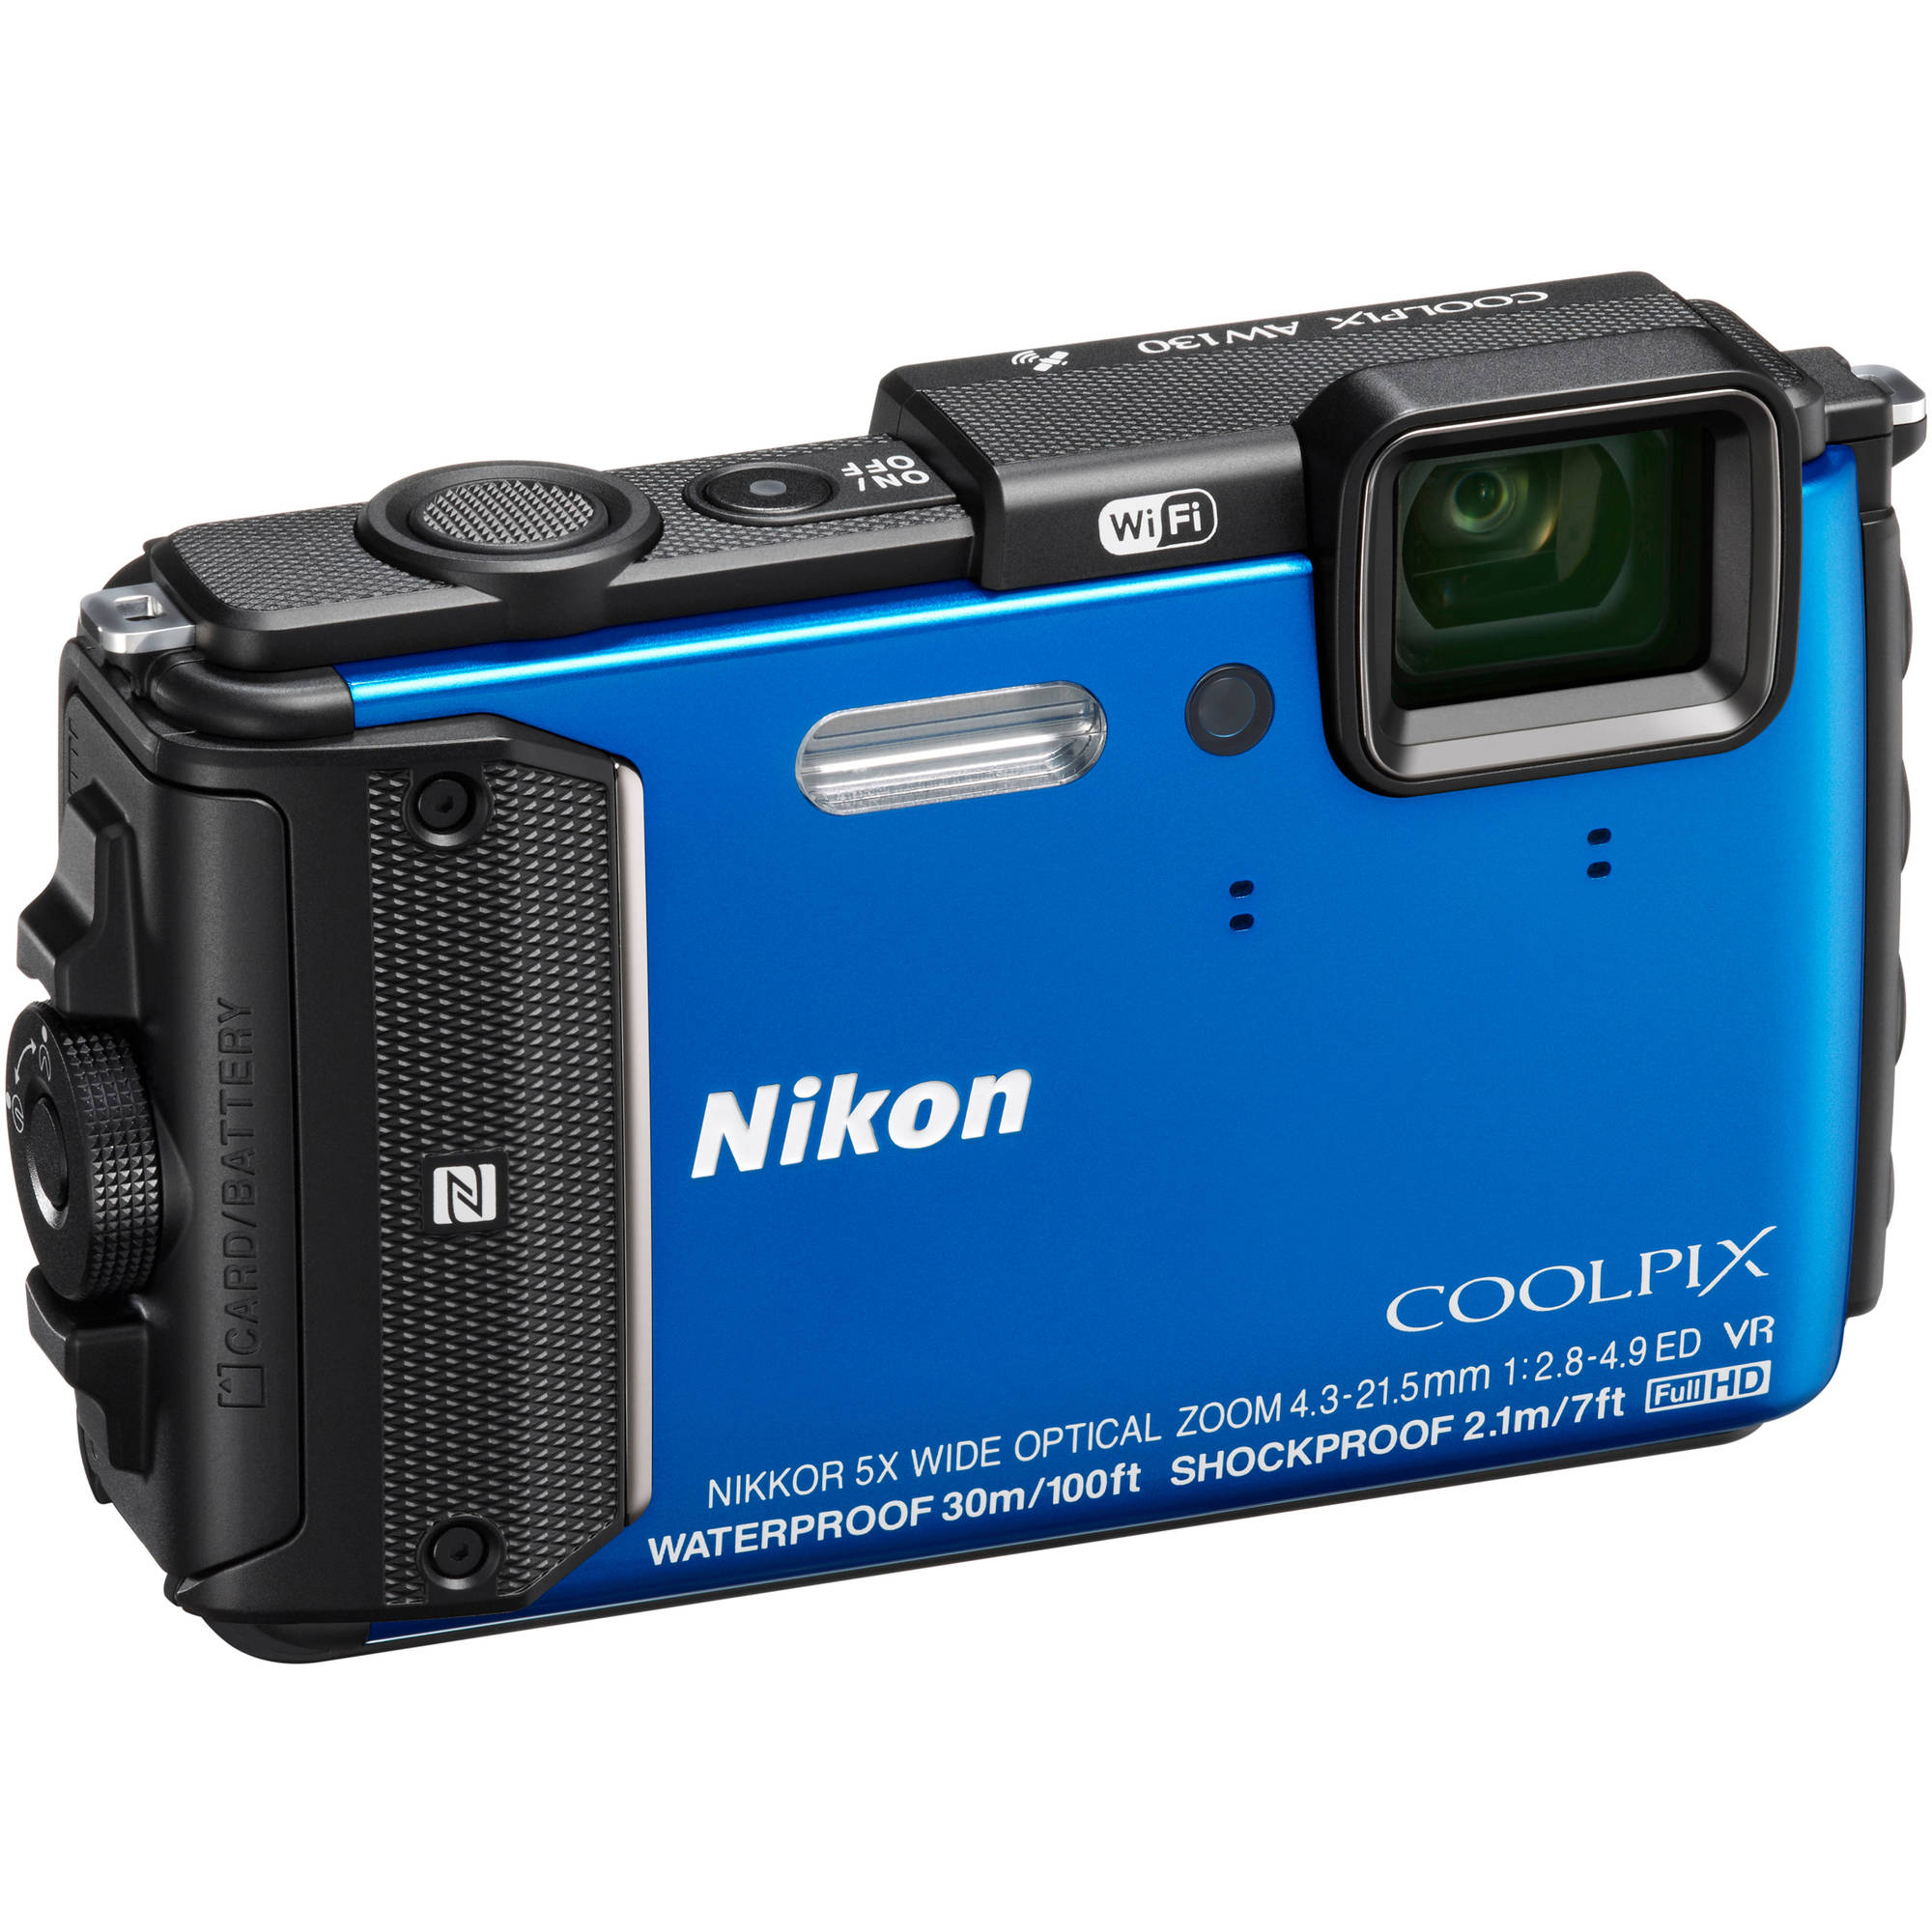 Nikon COOLPIX AW130 Digital Camera with 16 Megapixels and 5x Optical Zoom